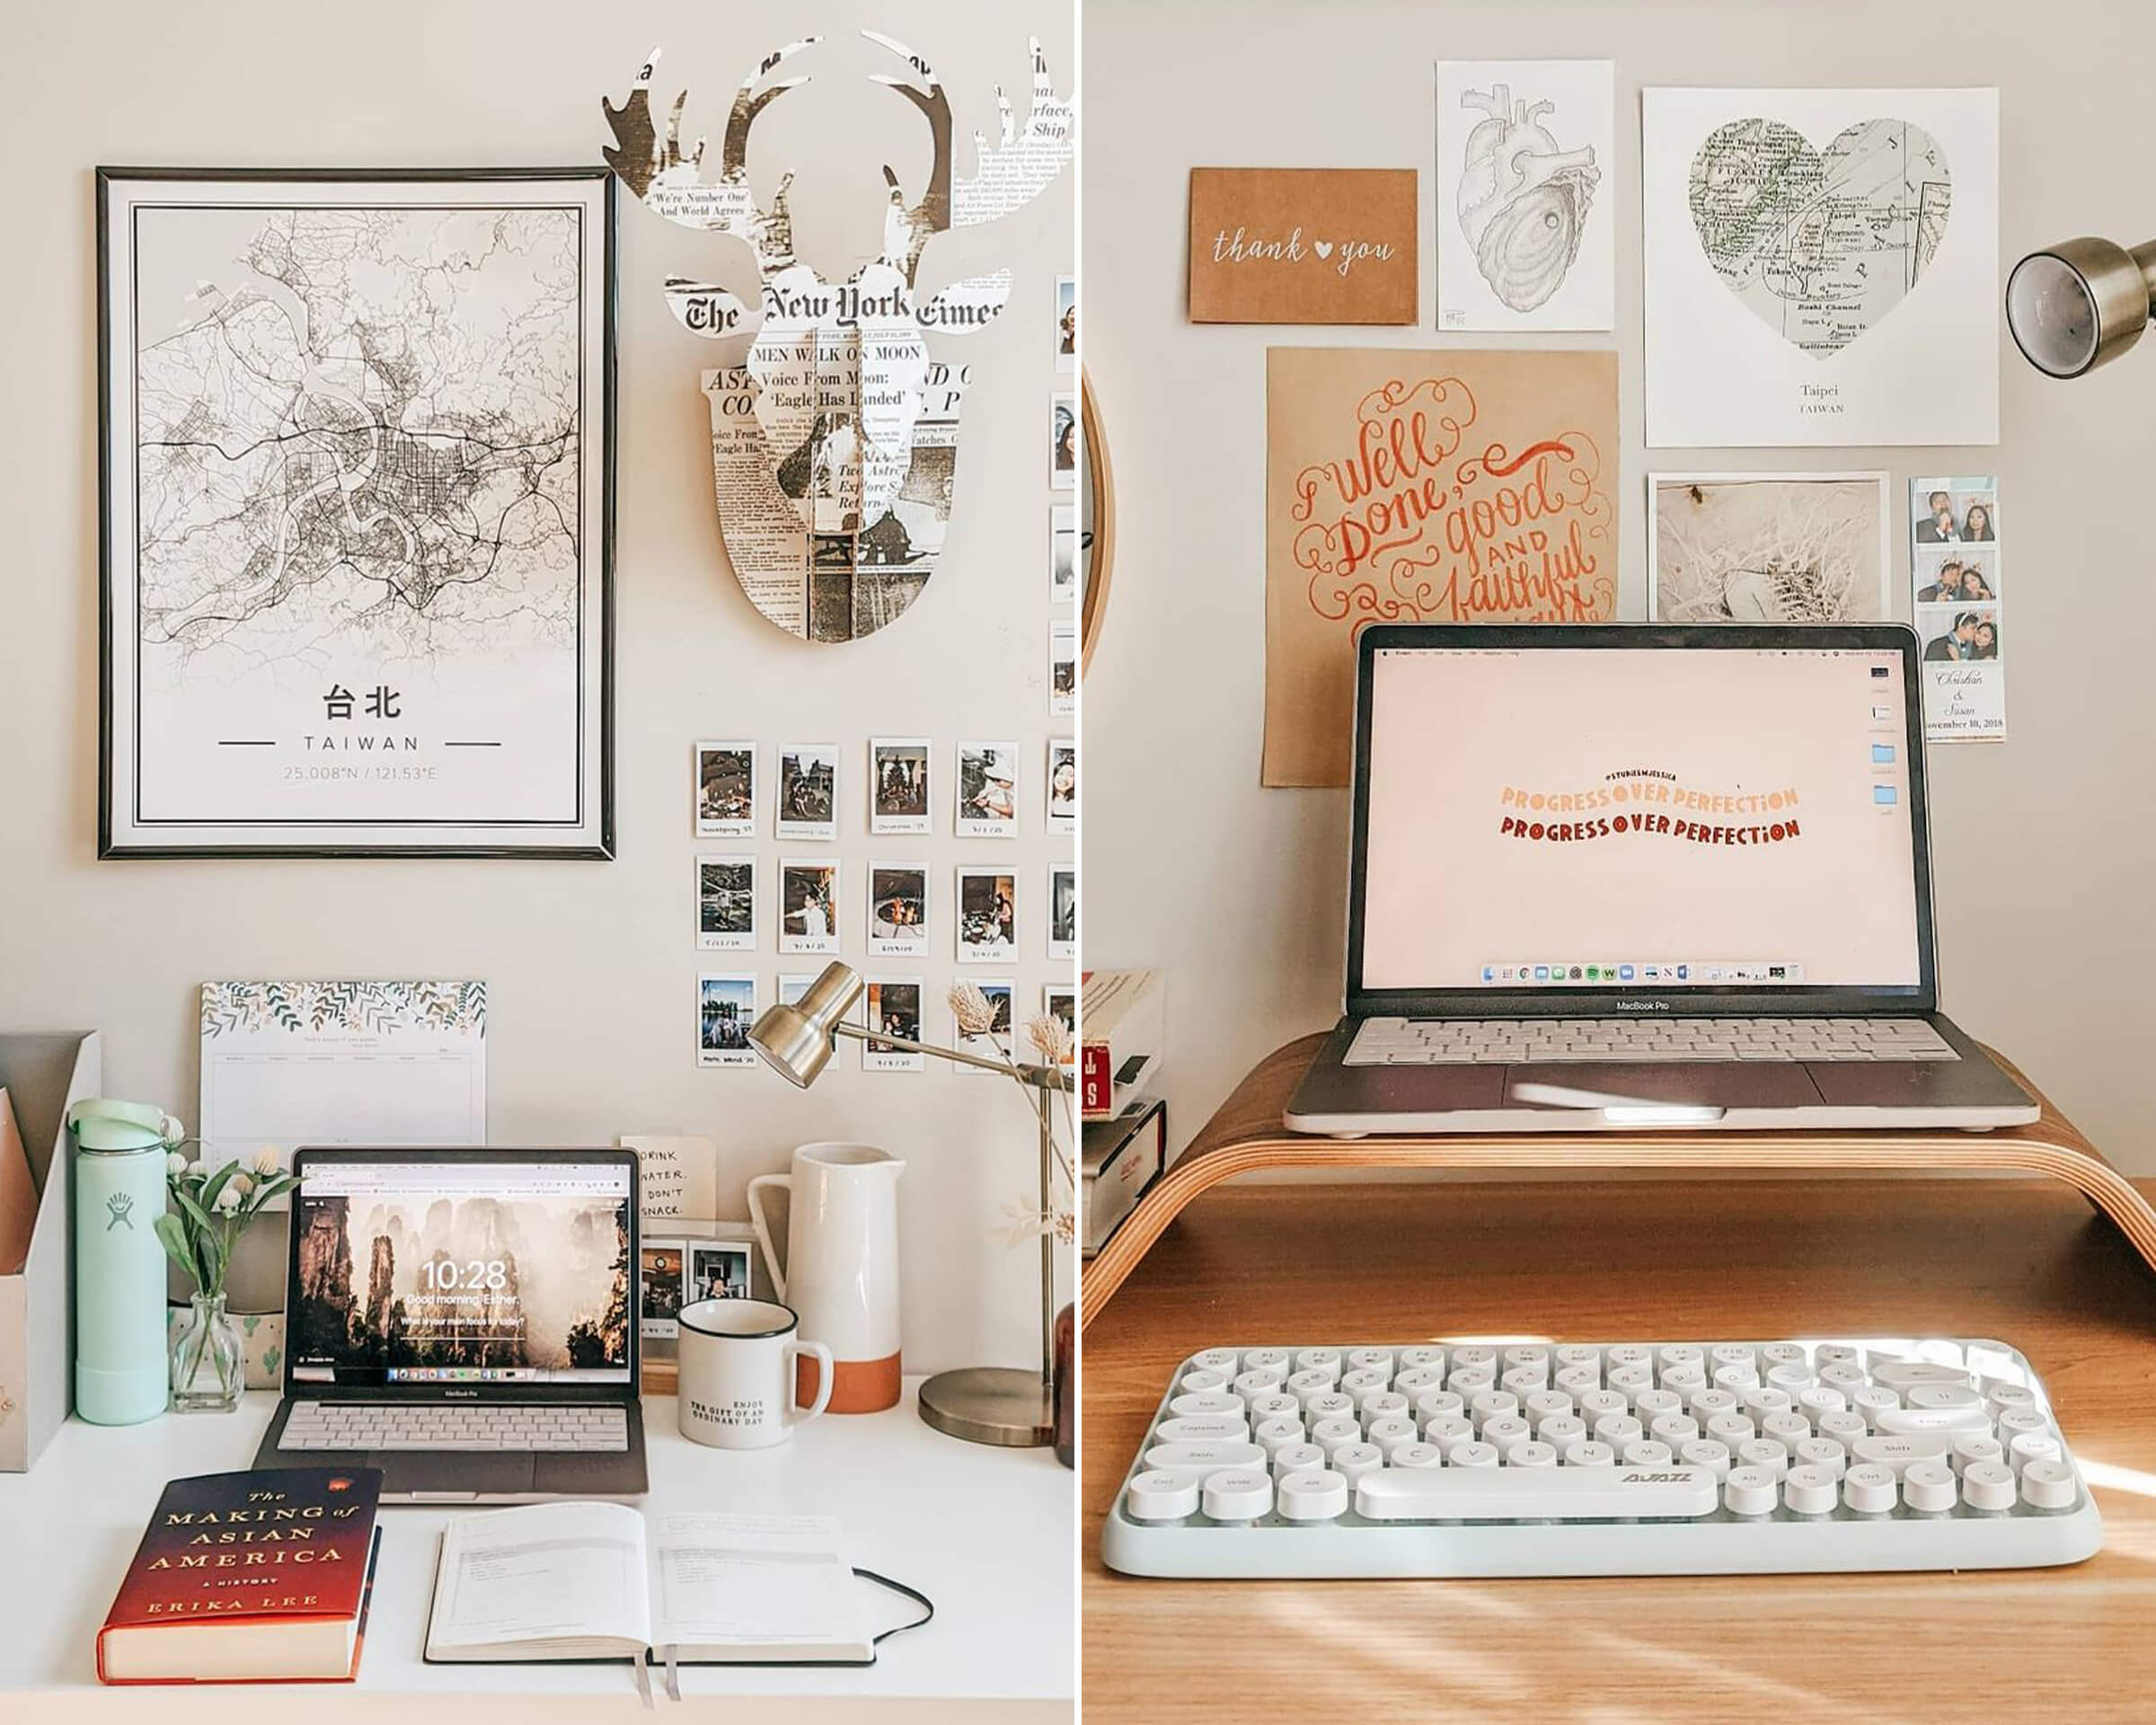 Aesthetic Desk Wall Art & Decor